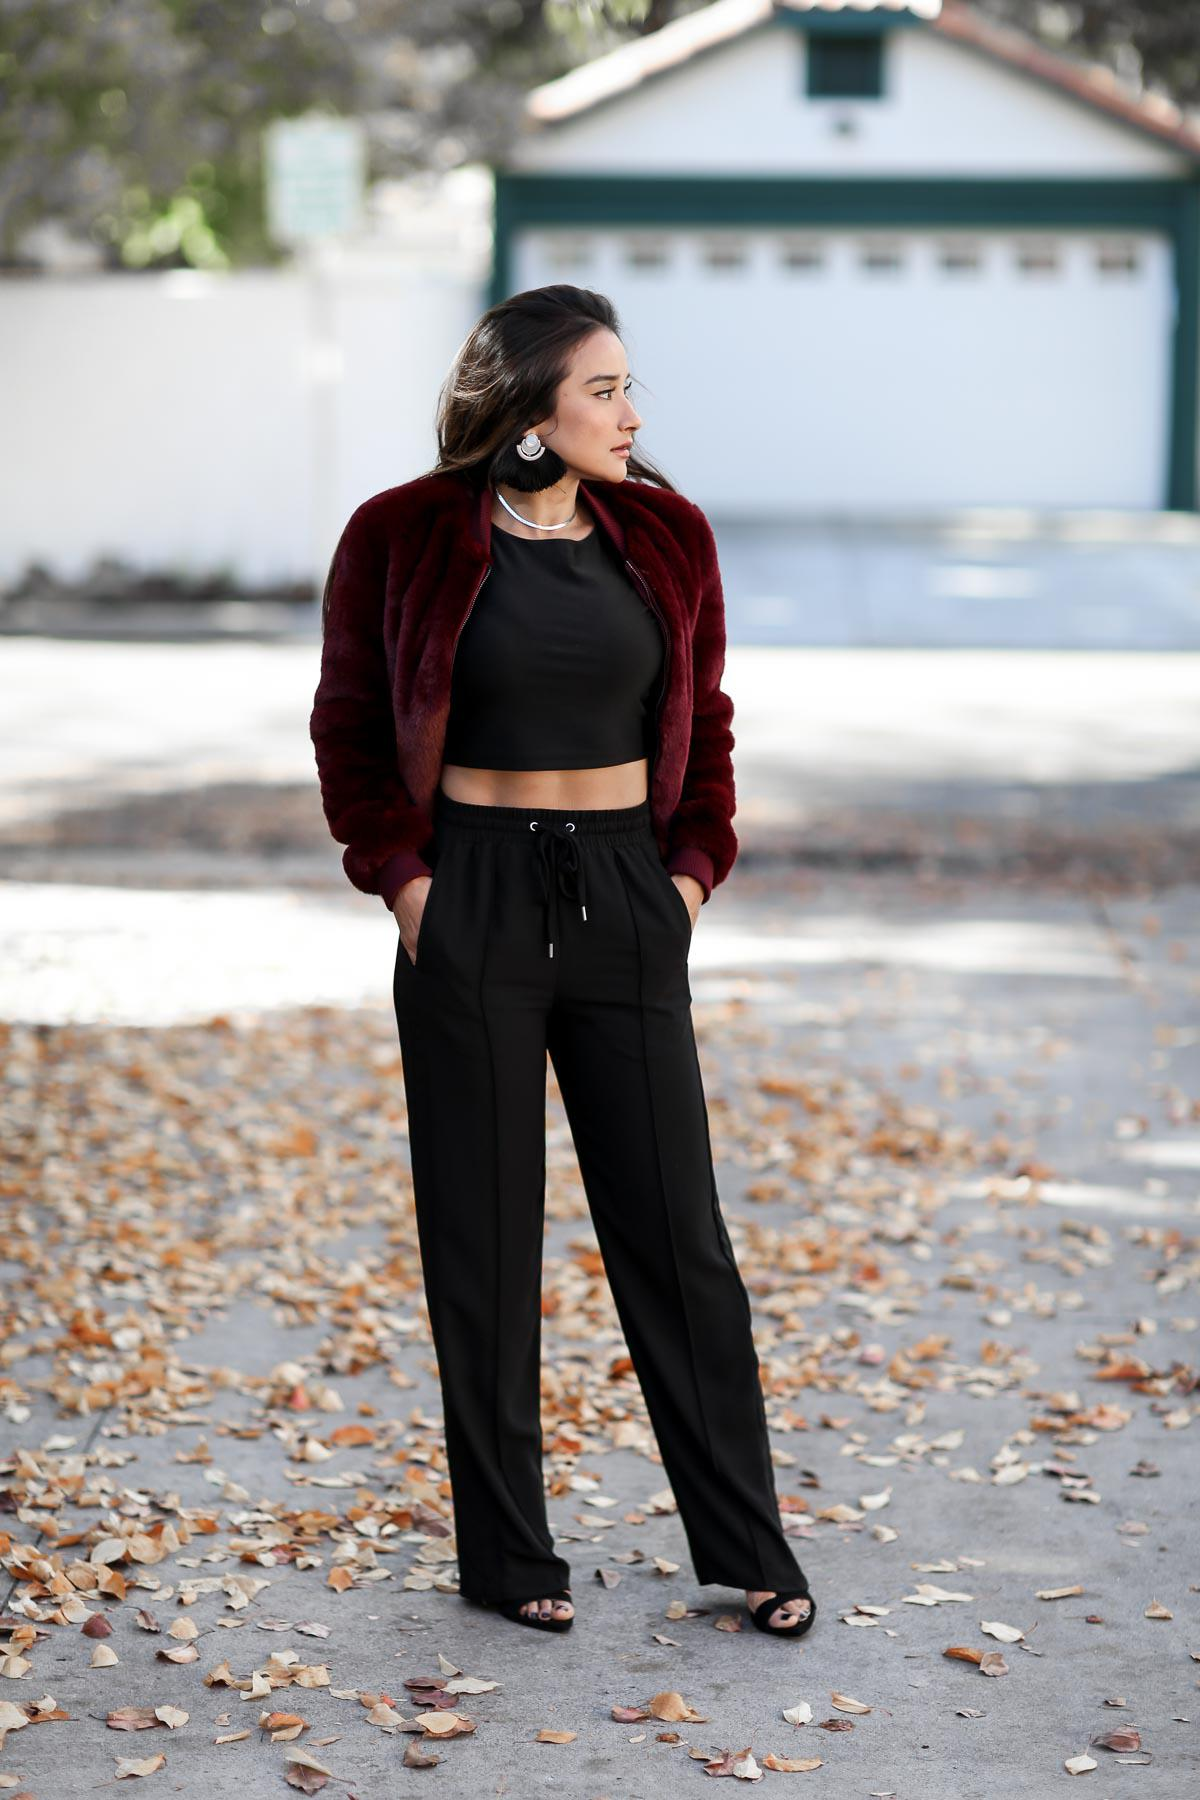 stiletto-confessions-hm-track-pants-forever21-bomber-44